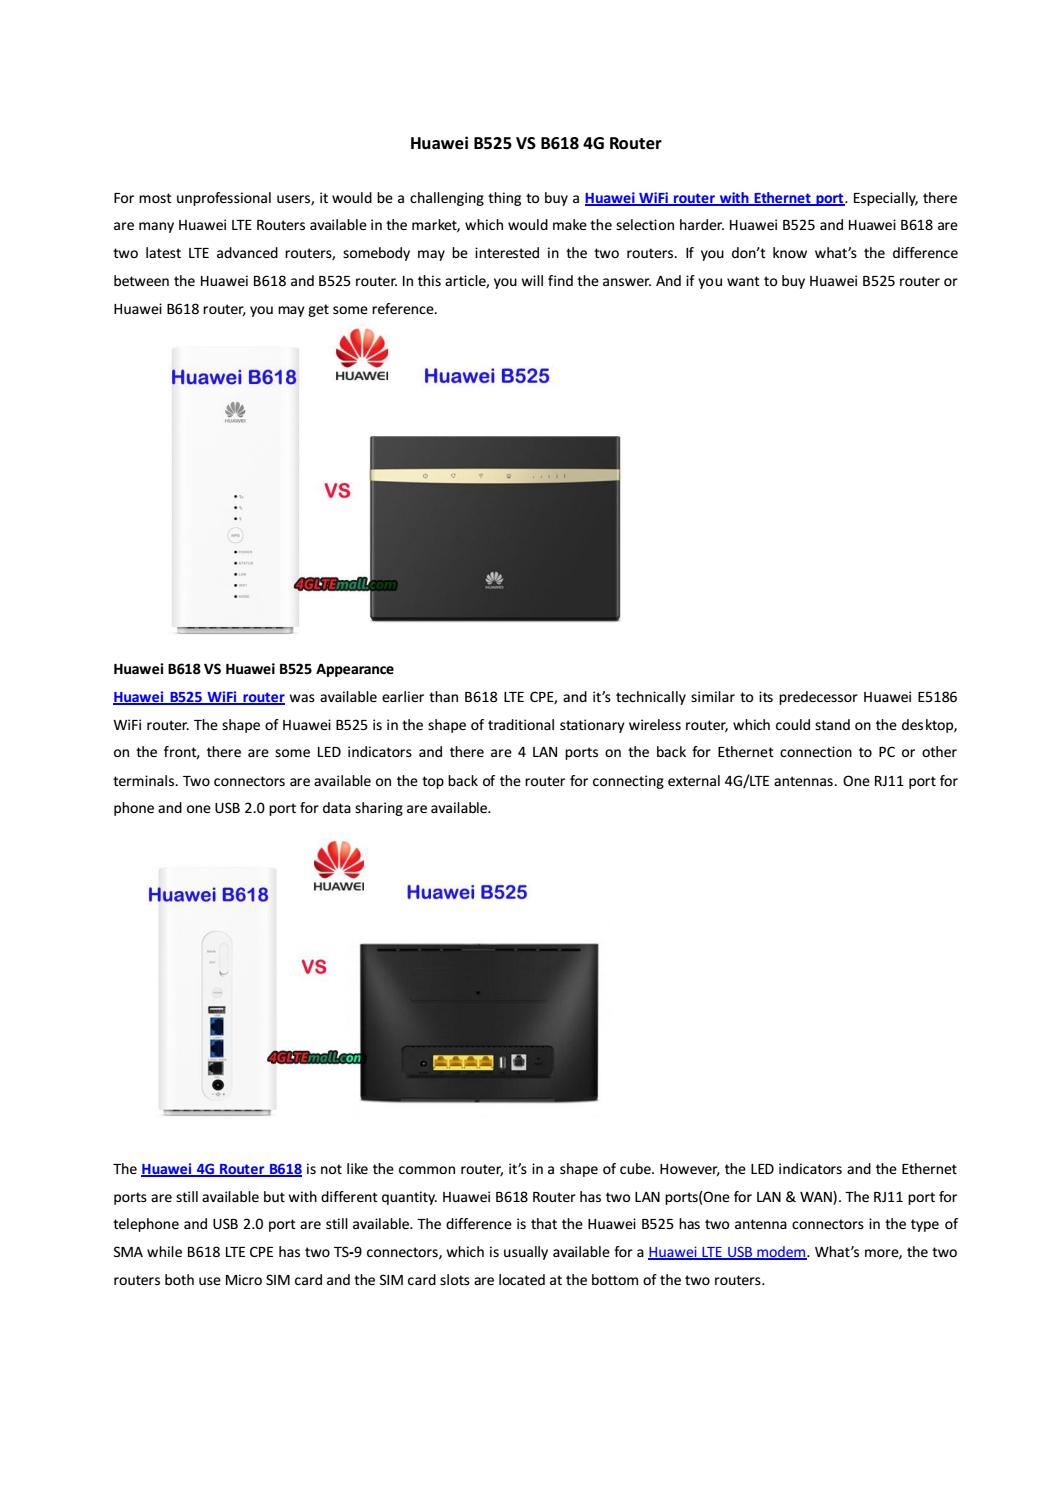 What's the difference between huawei b525 and b618 router by